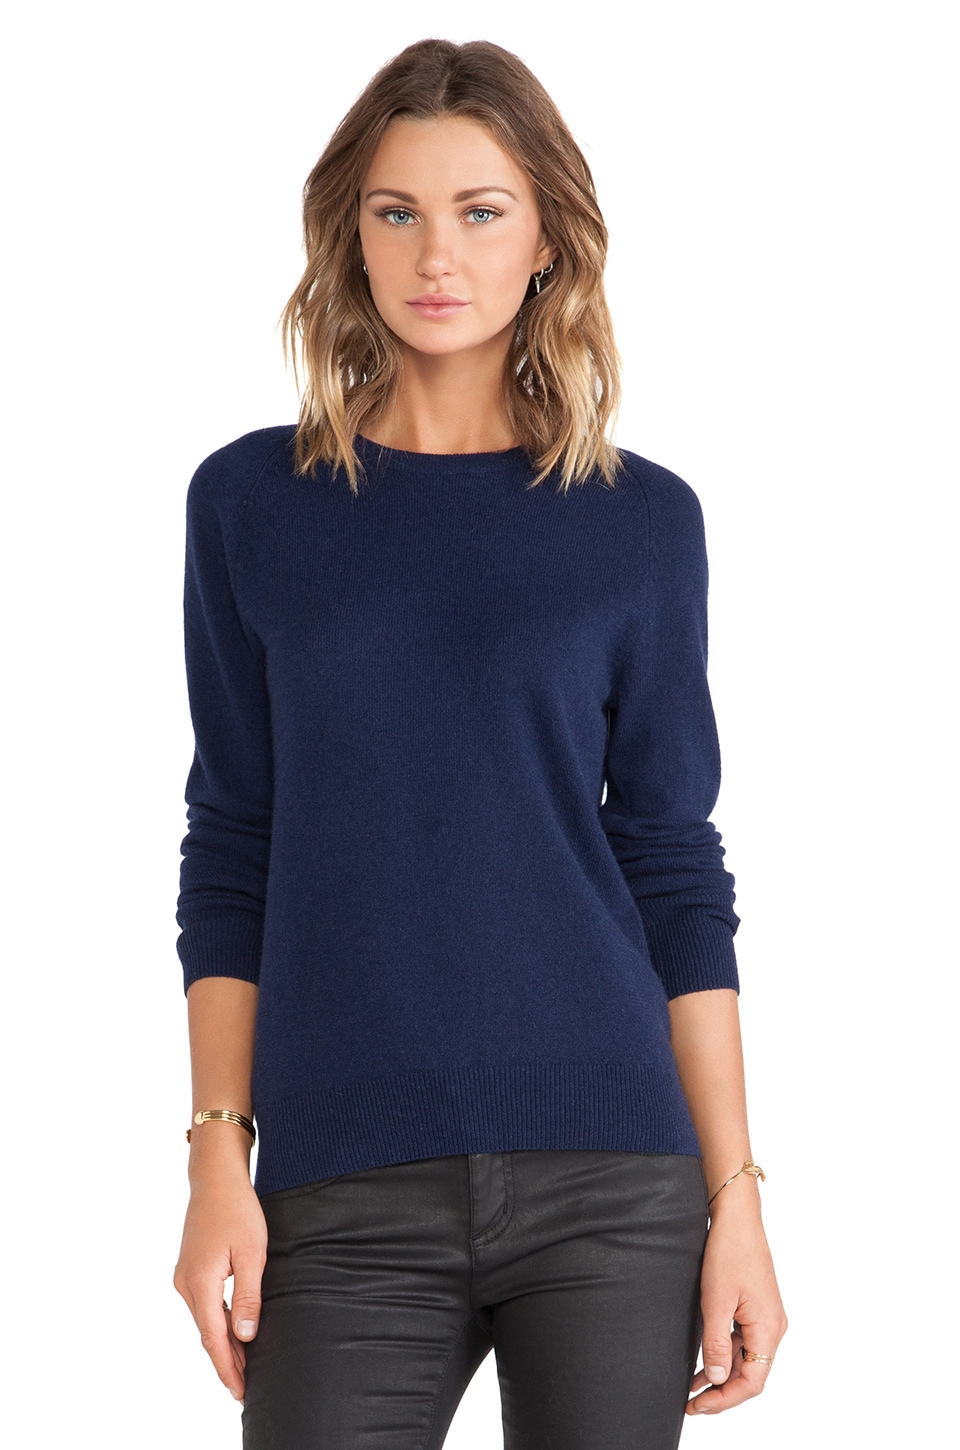 Equipment Sloane Crewneck Sweater in Peacoat